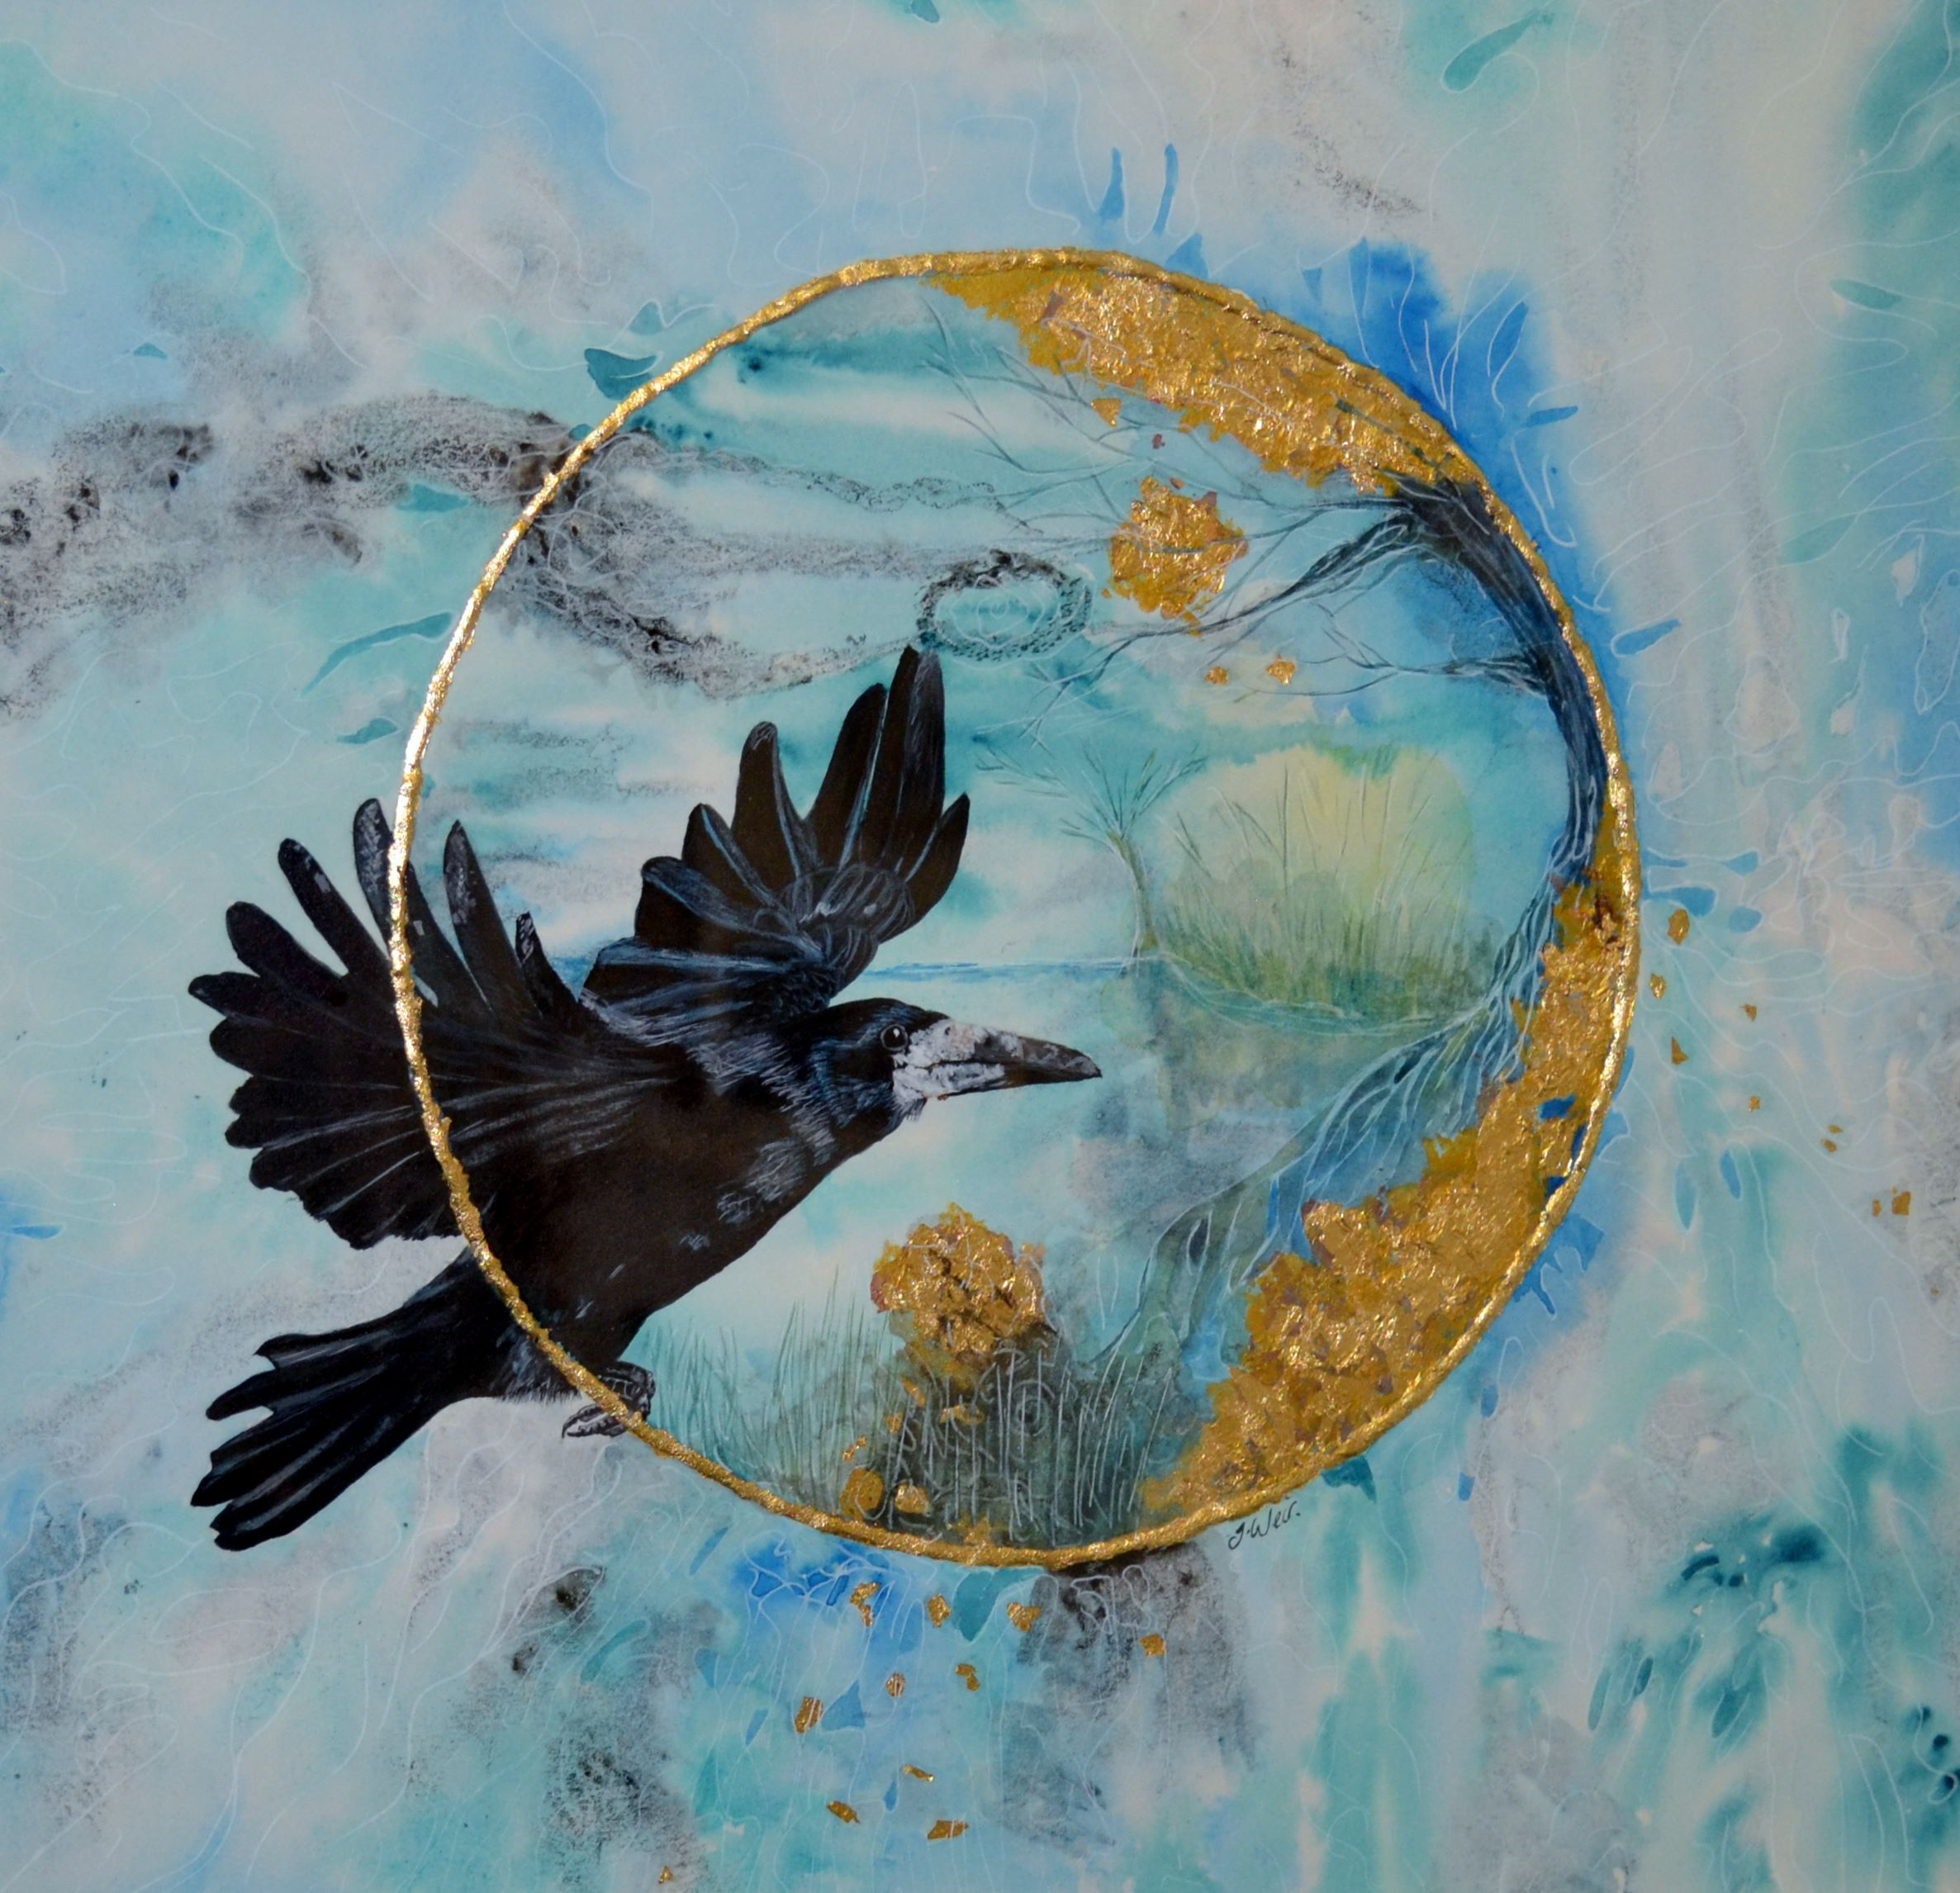 "'The Flight of the Rook' By Julie Weir - Acrylic ink & watercolour - £250 - 23"" x 23"""